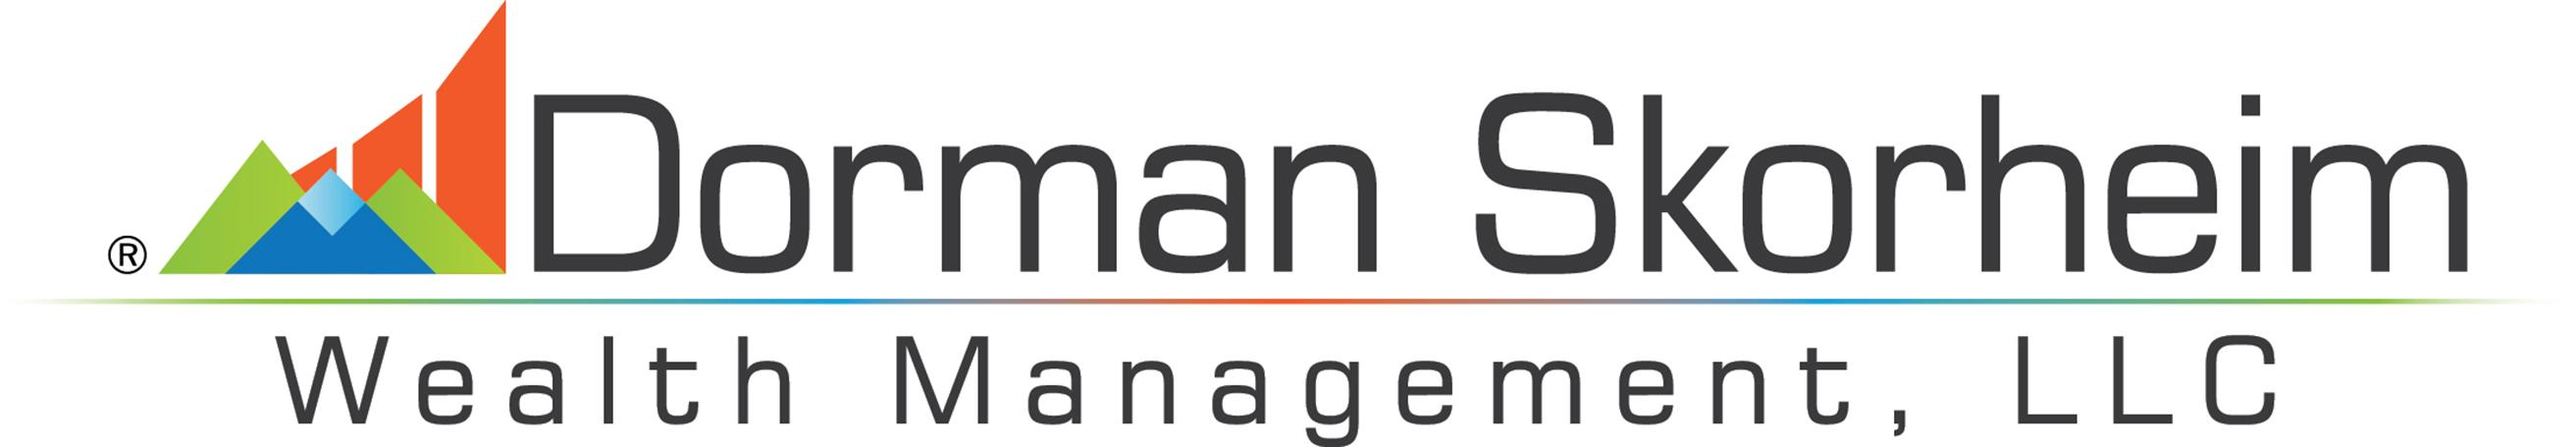 Dorman Skorheim Wealth Management LLC